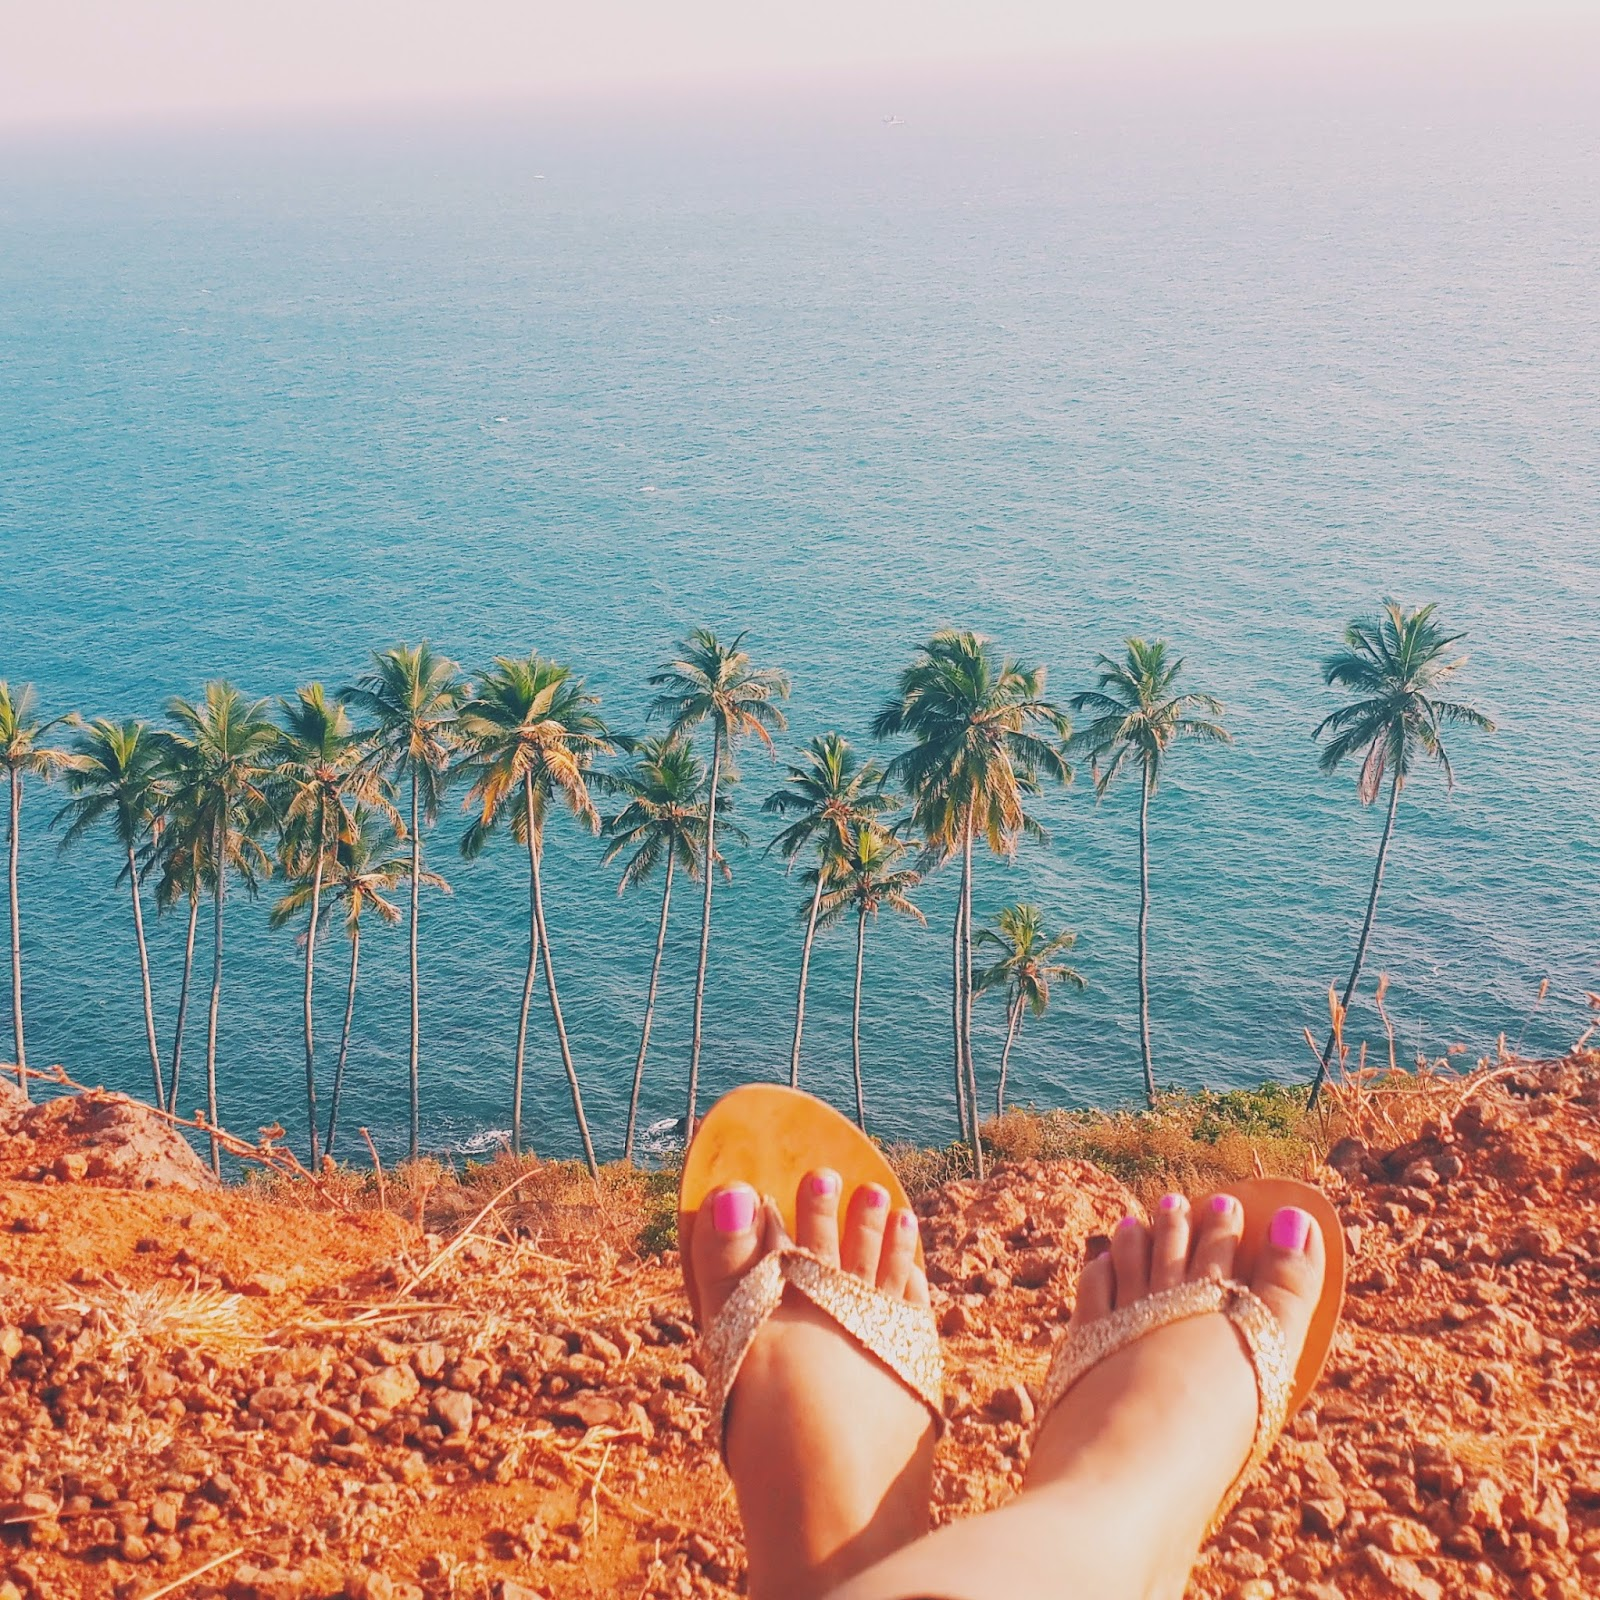 Dayle Pereira of Style File India sits with her feet in the frame wearing gold sandals and pink nail polish on a cliff overlooking a coconut palm tree dotted terrain near the ocean